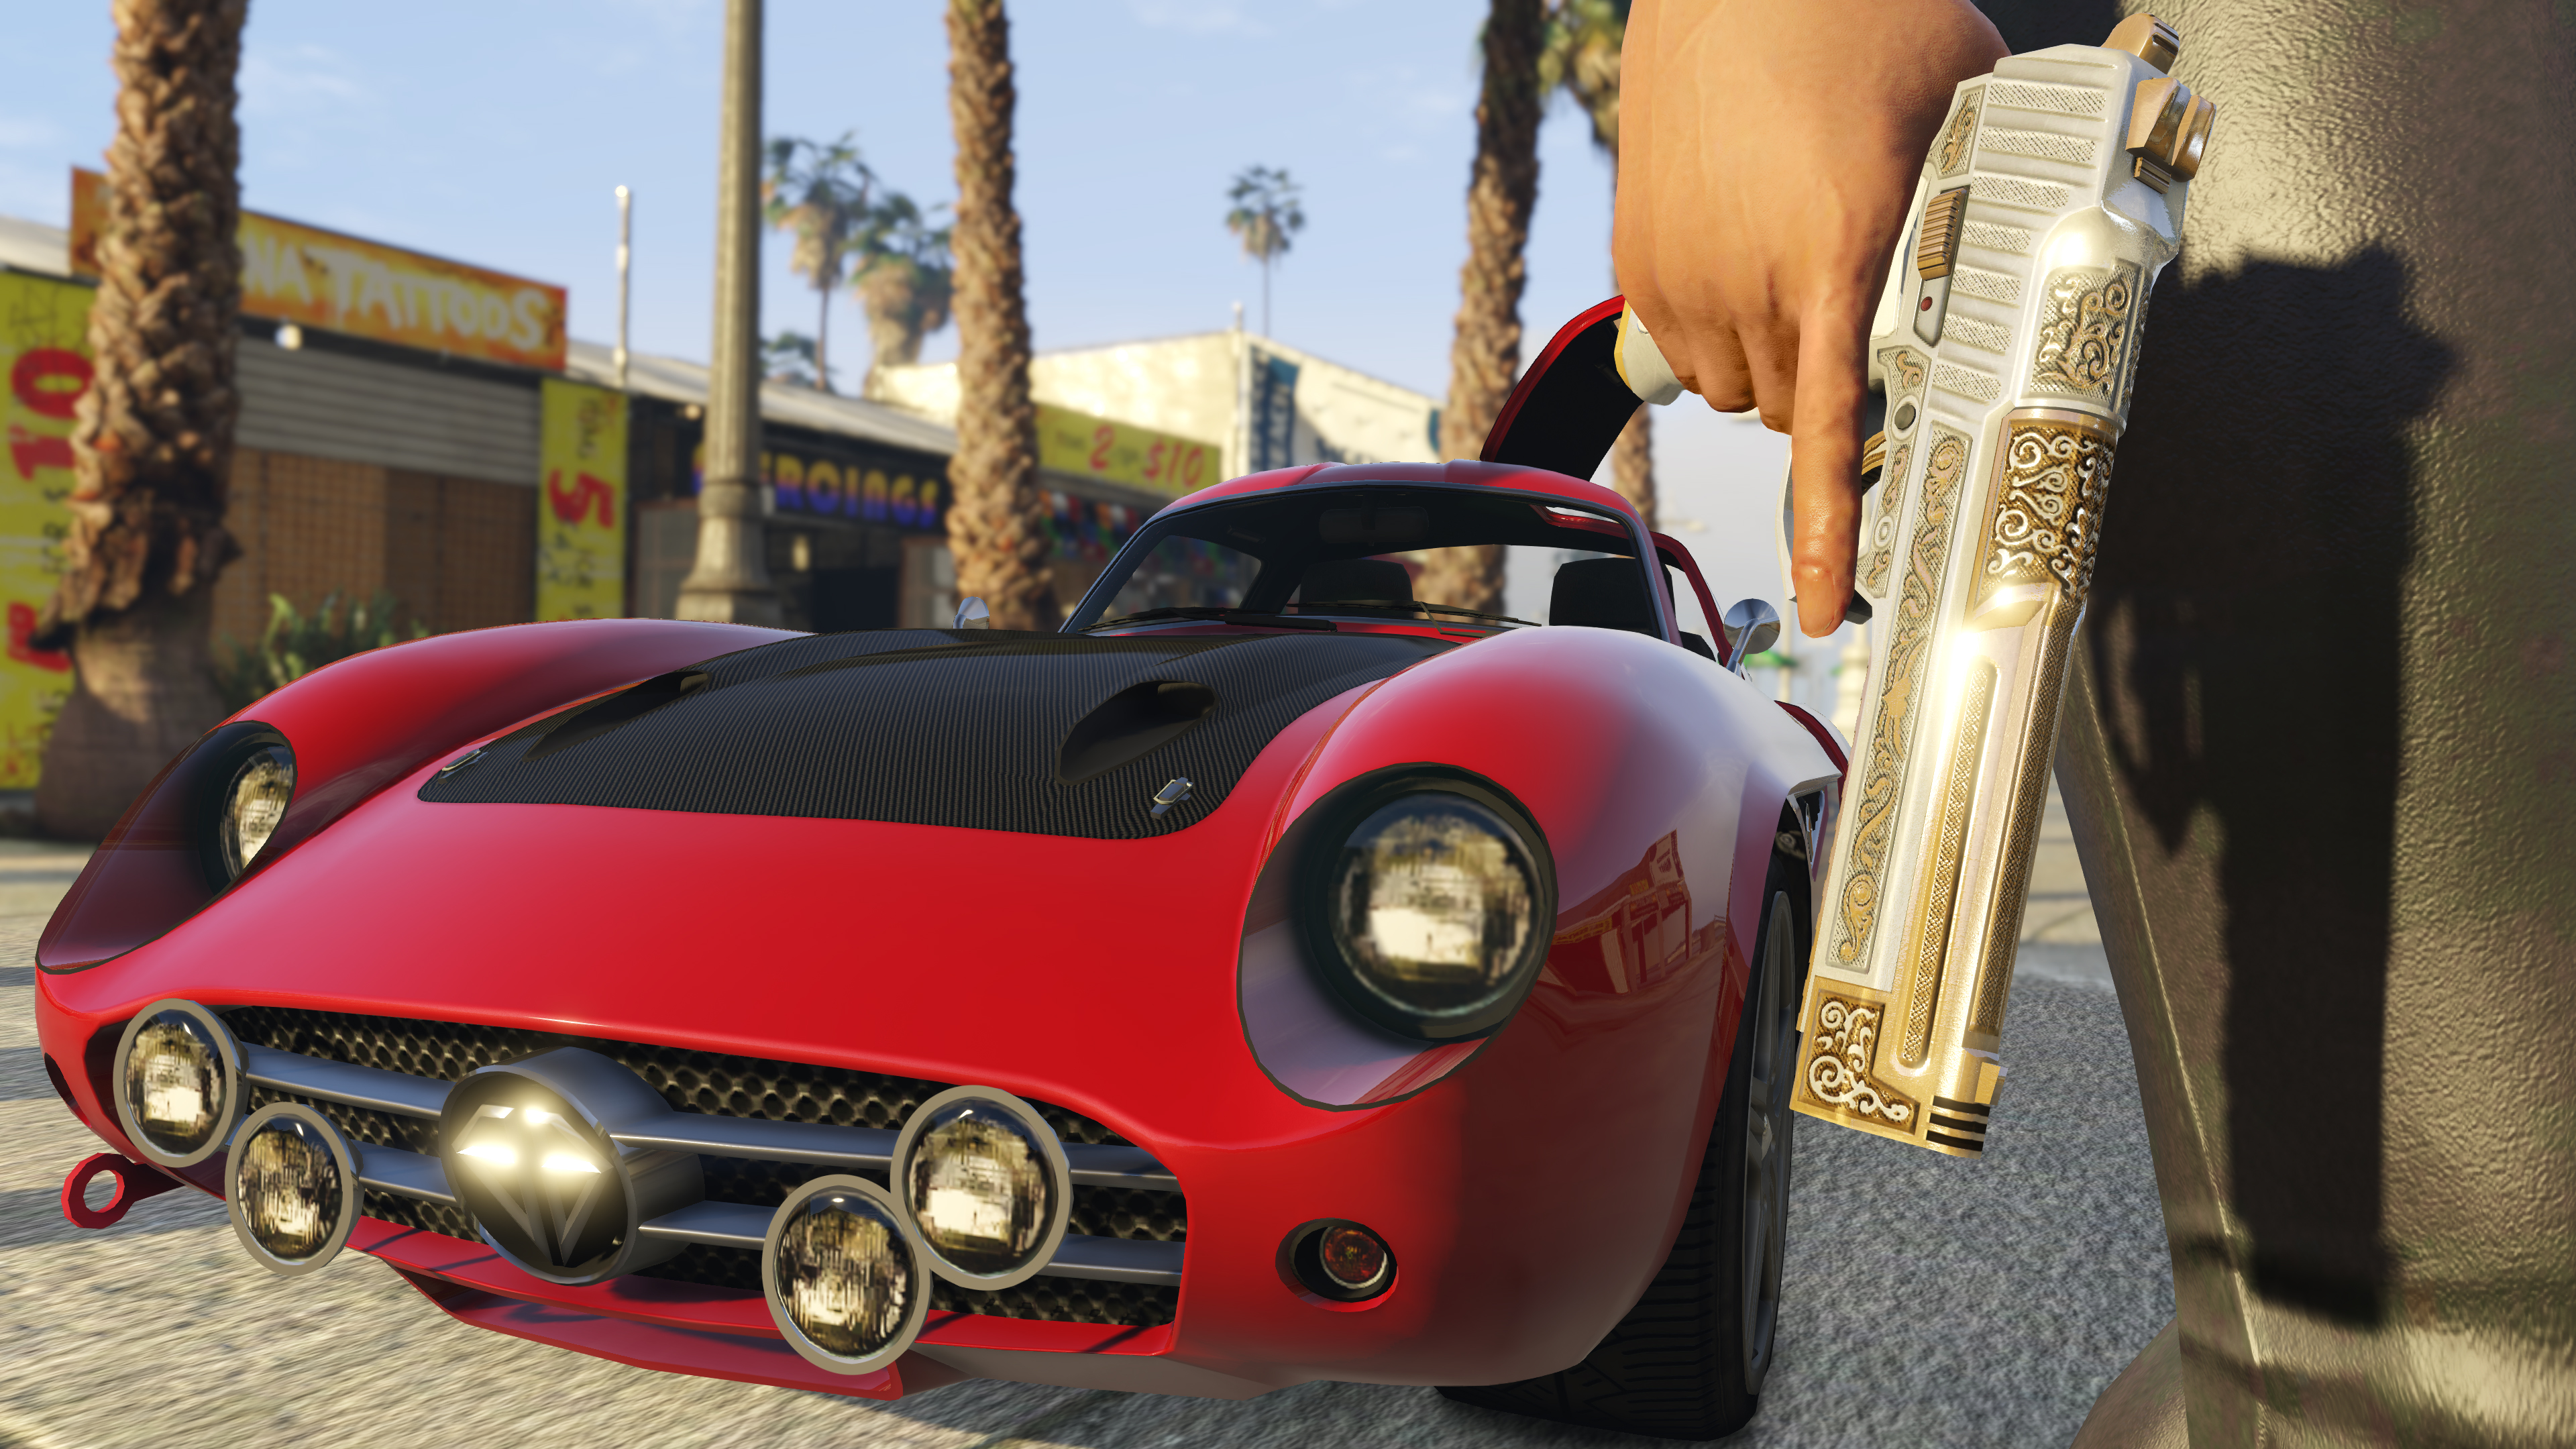 Asked & Answered: The Rockstar Editor, GTA Online Updates